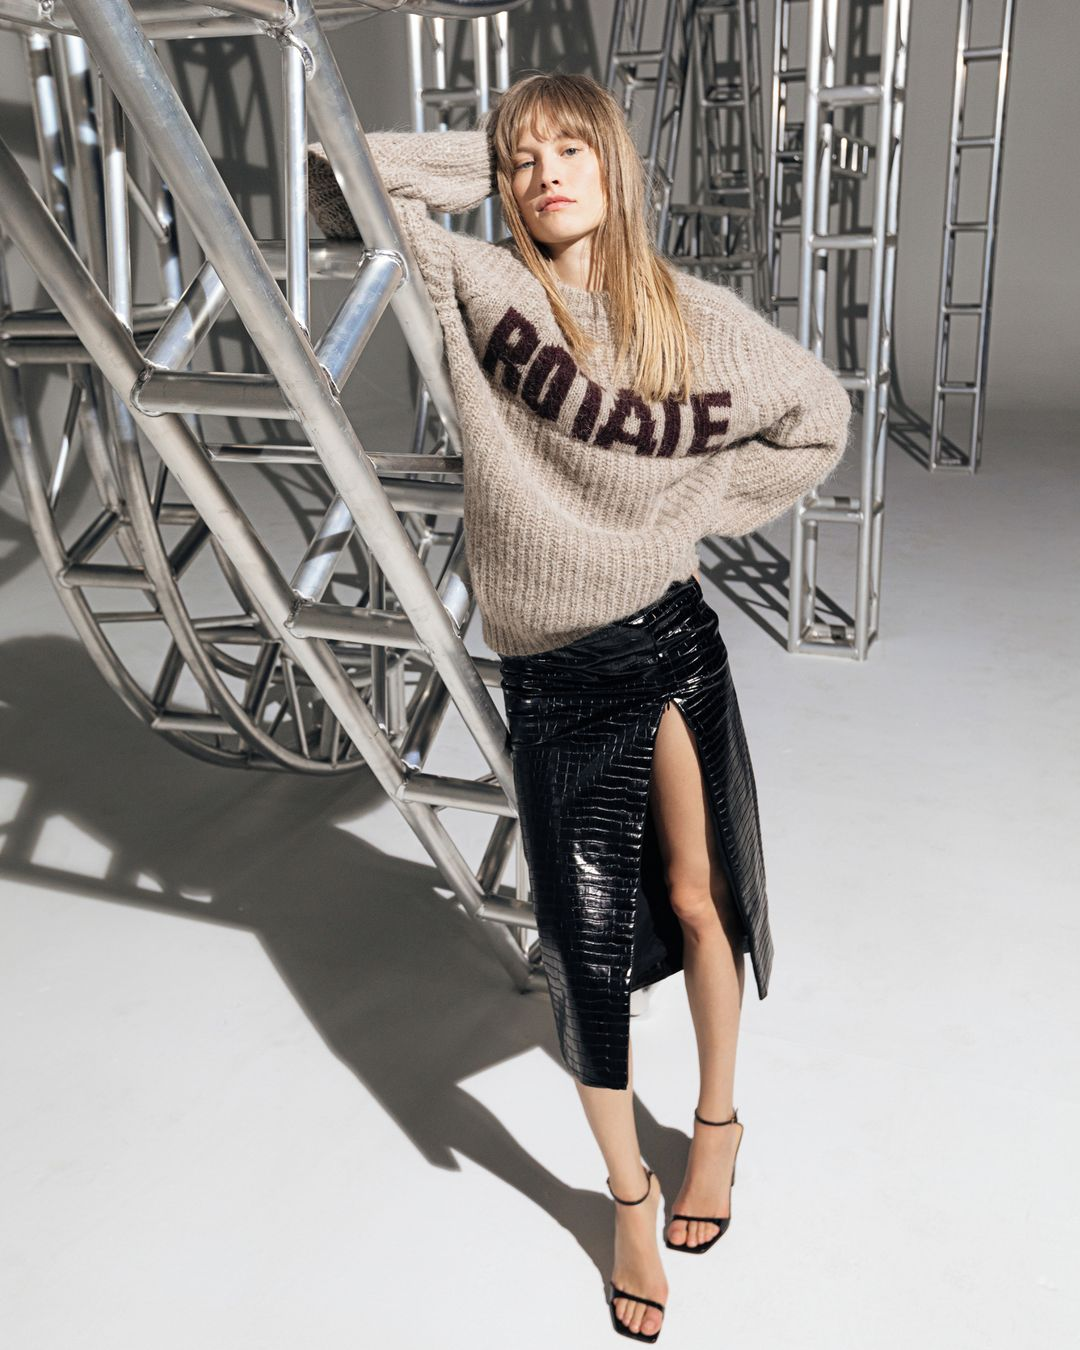 rotate-fall-2021-brandy-cable-knitted-wool-blend-sweater-instagram